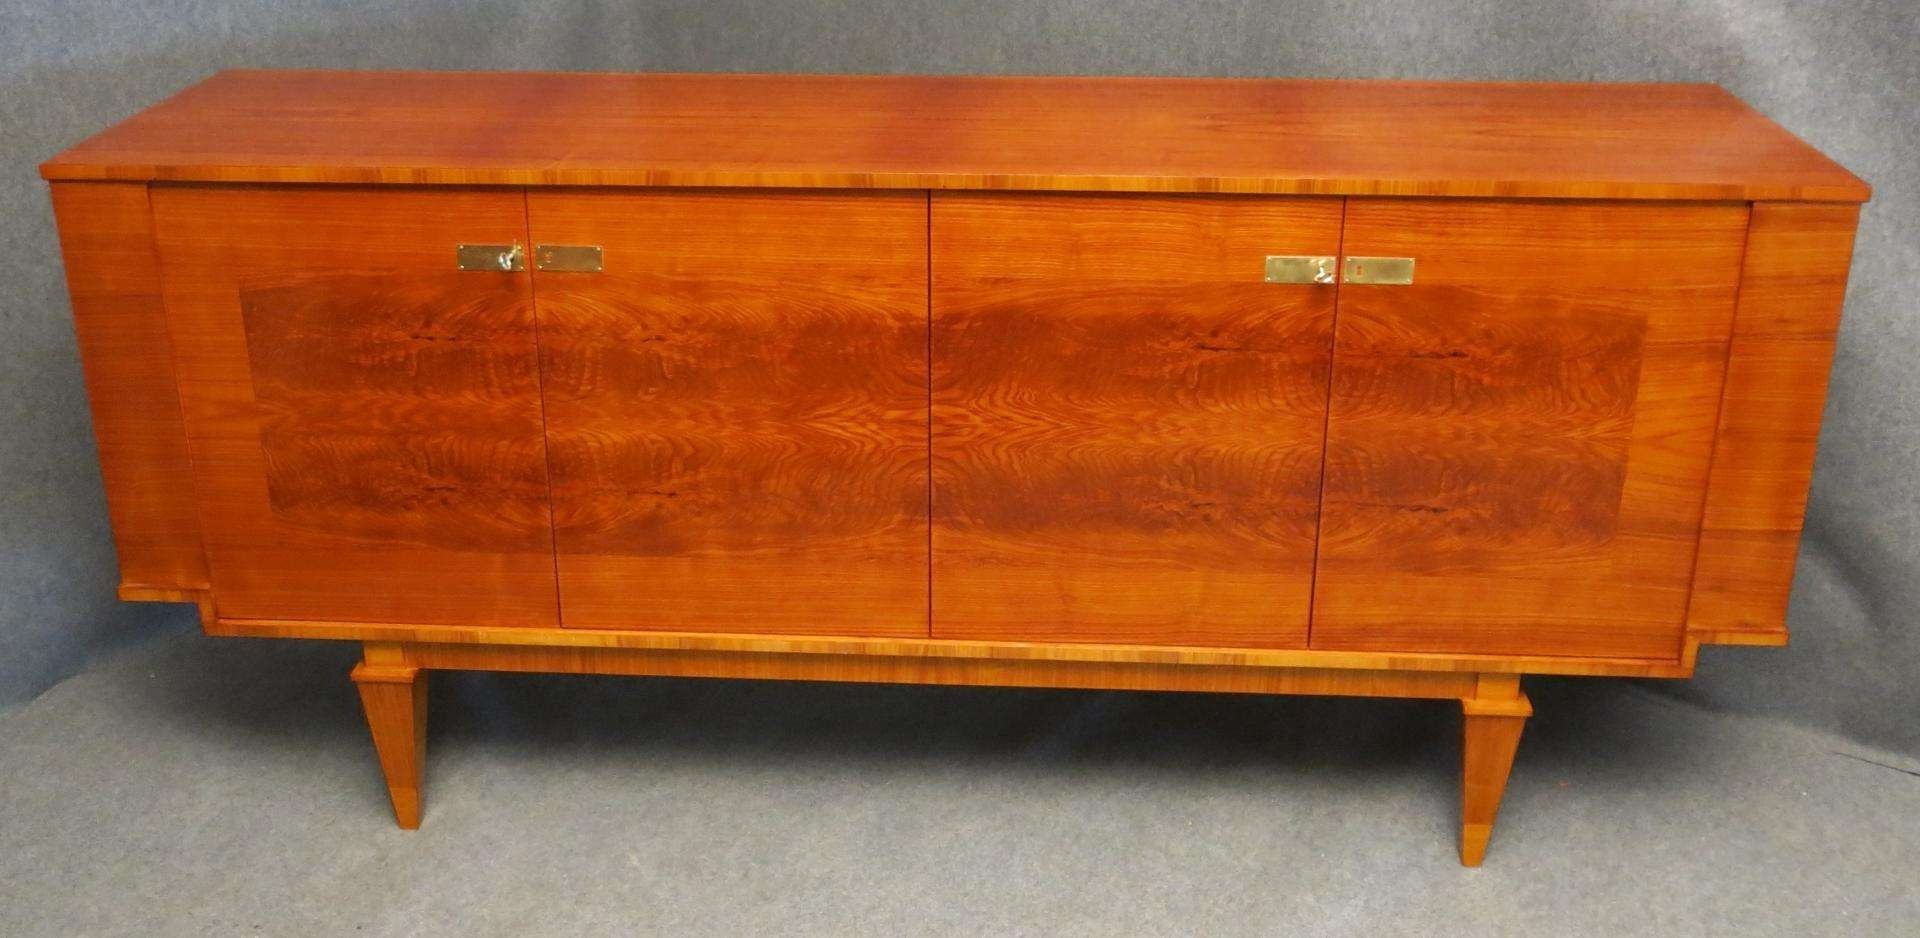 French Art Deco Sideboard, 1920s For Sale At Pamono Inside Art Deco Sideboards (View 2 of 20)